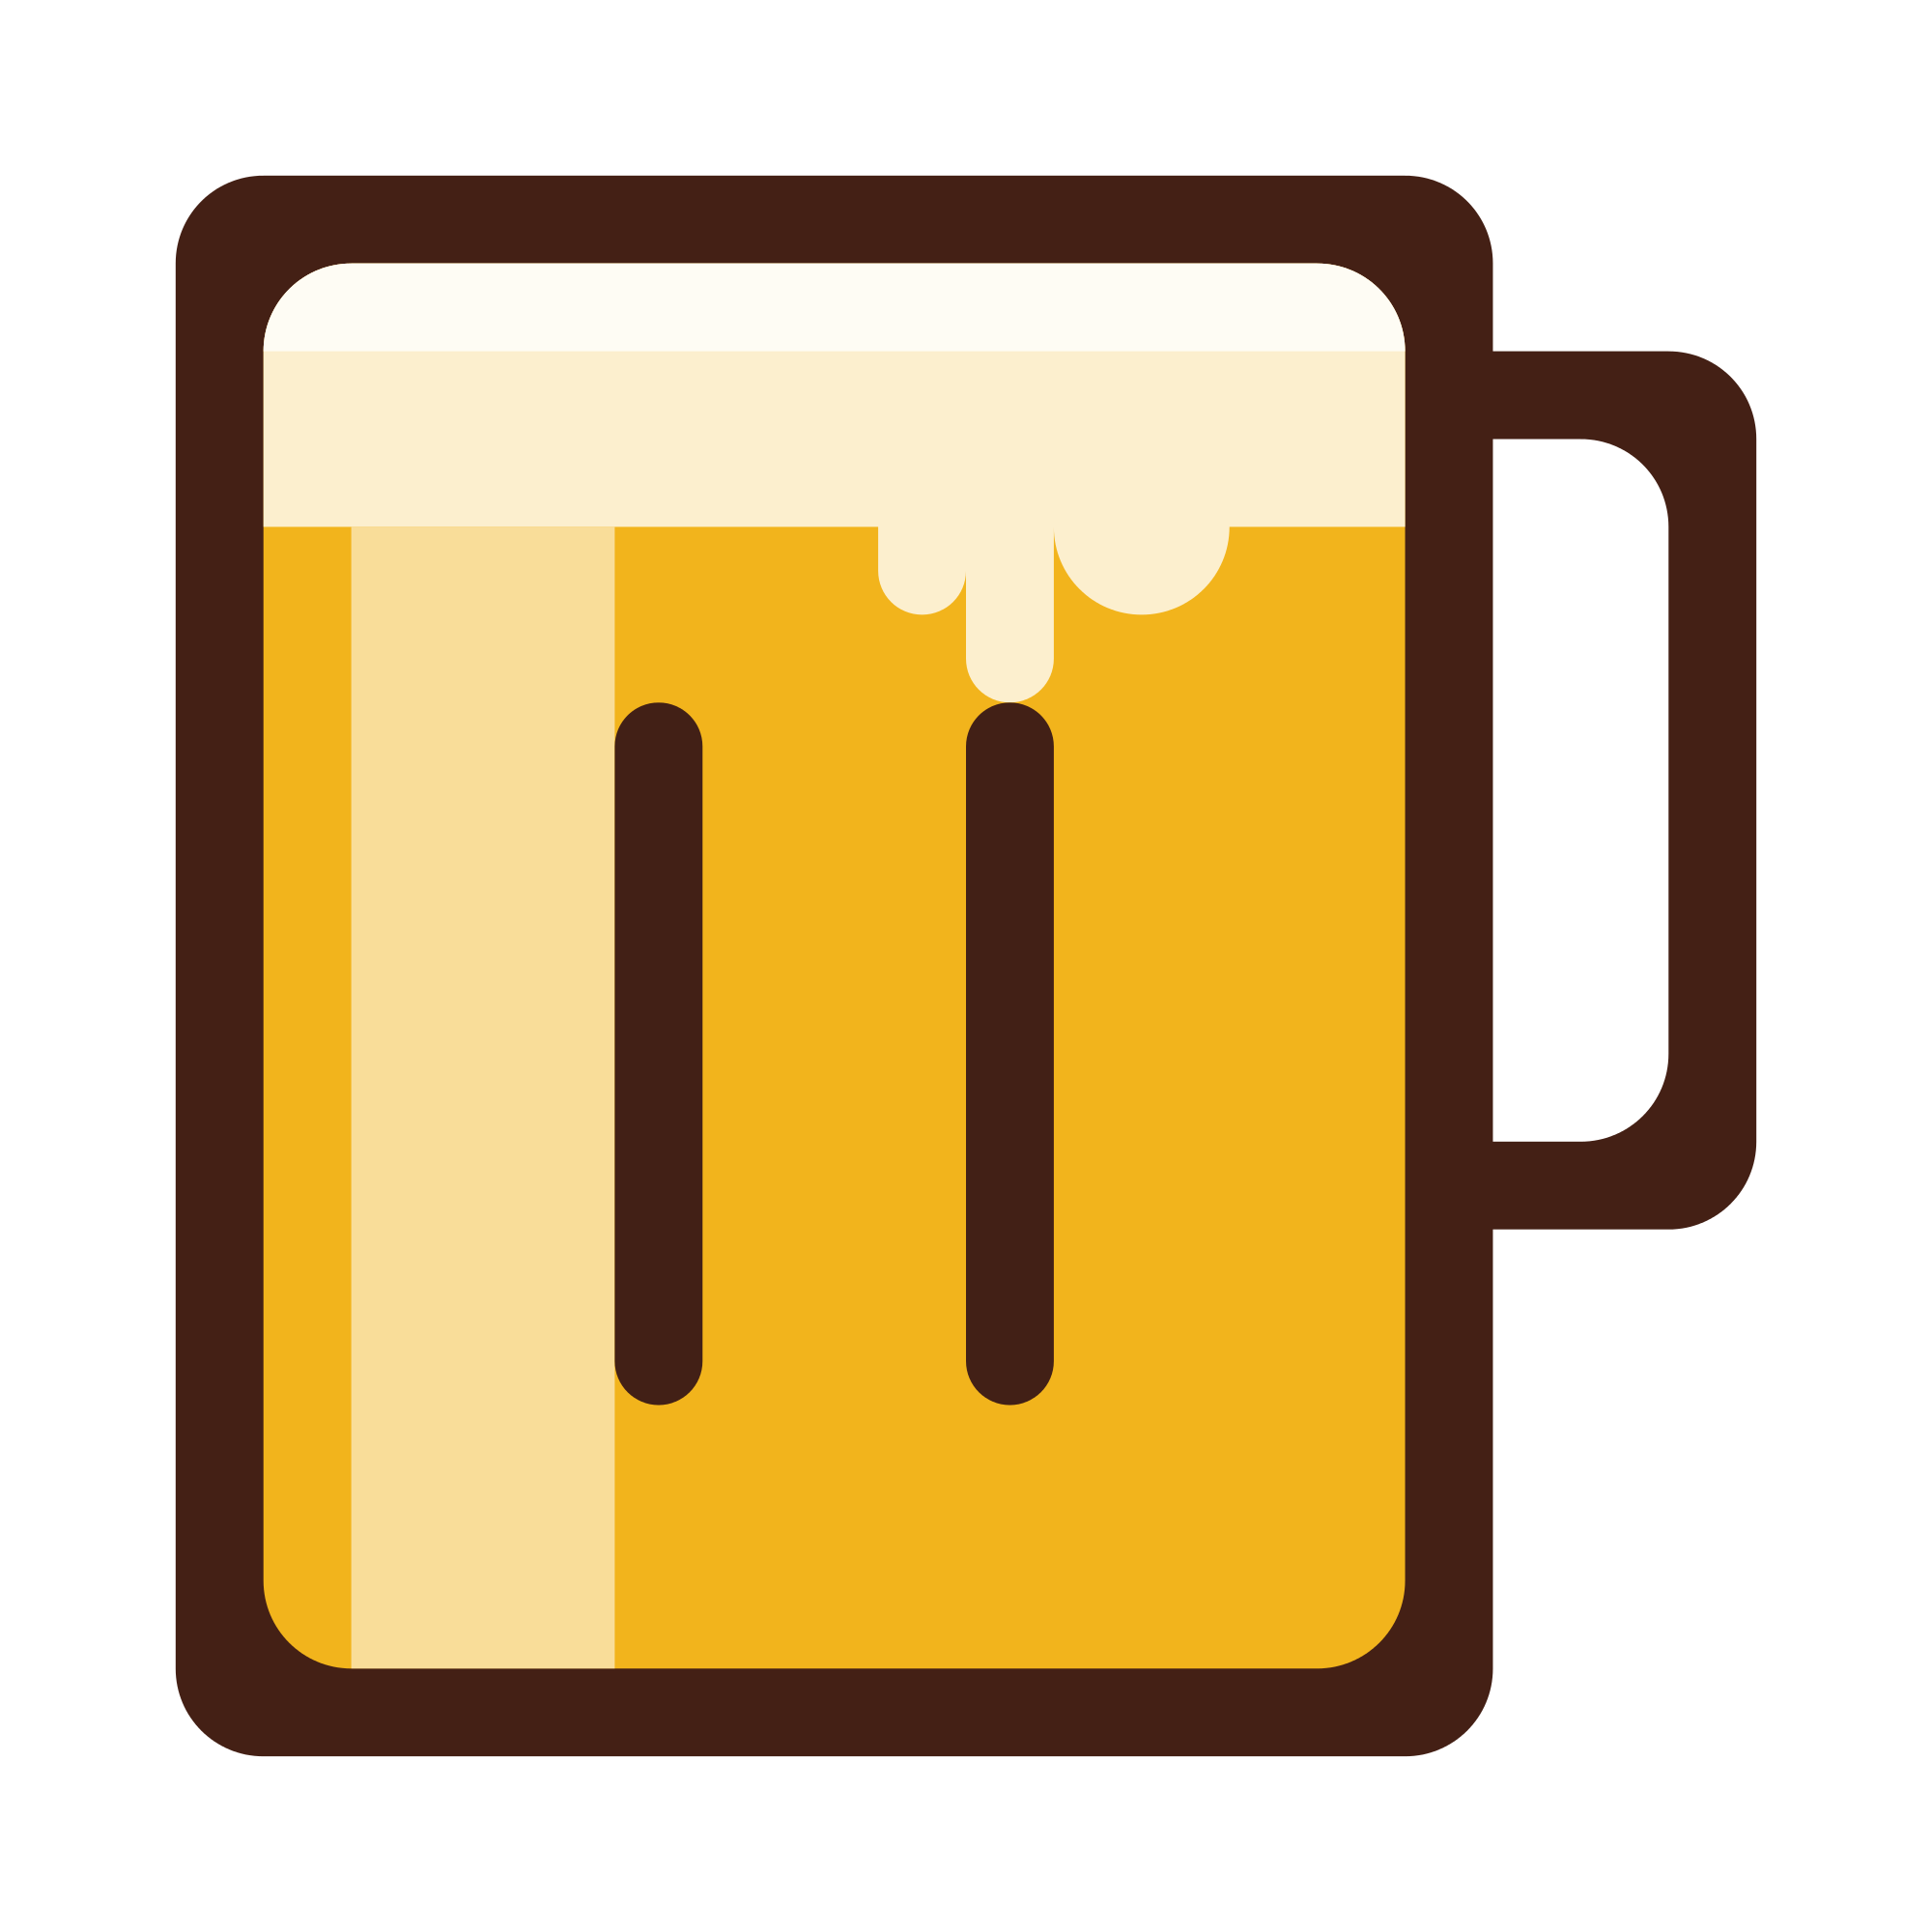 Drink svg #701, Download drawings